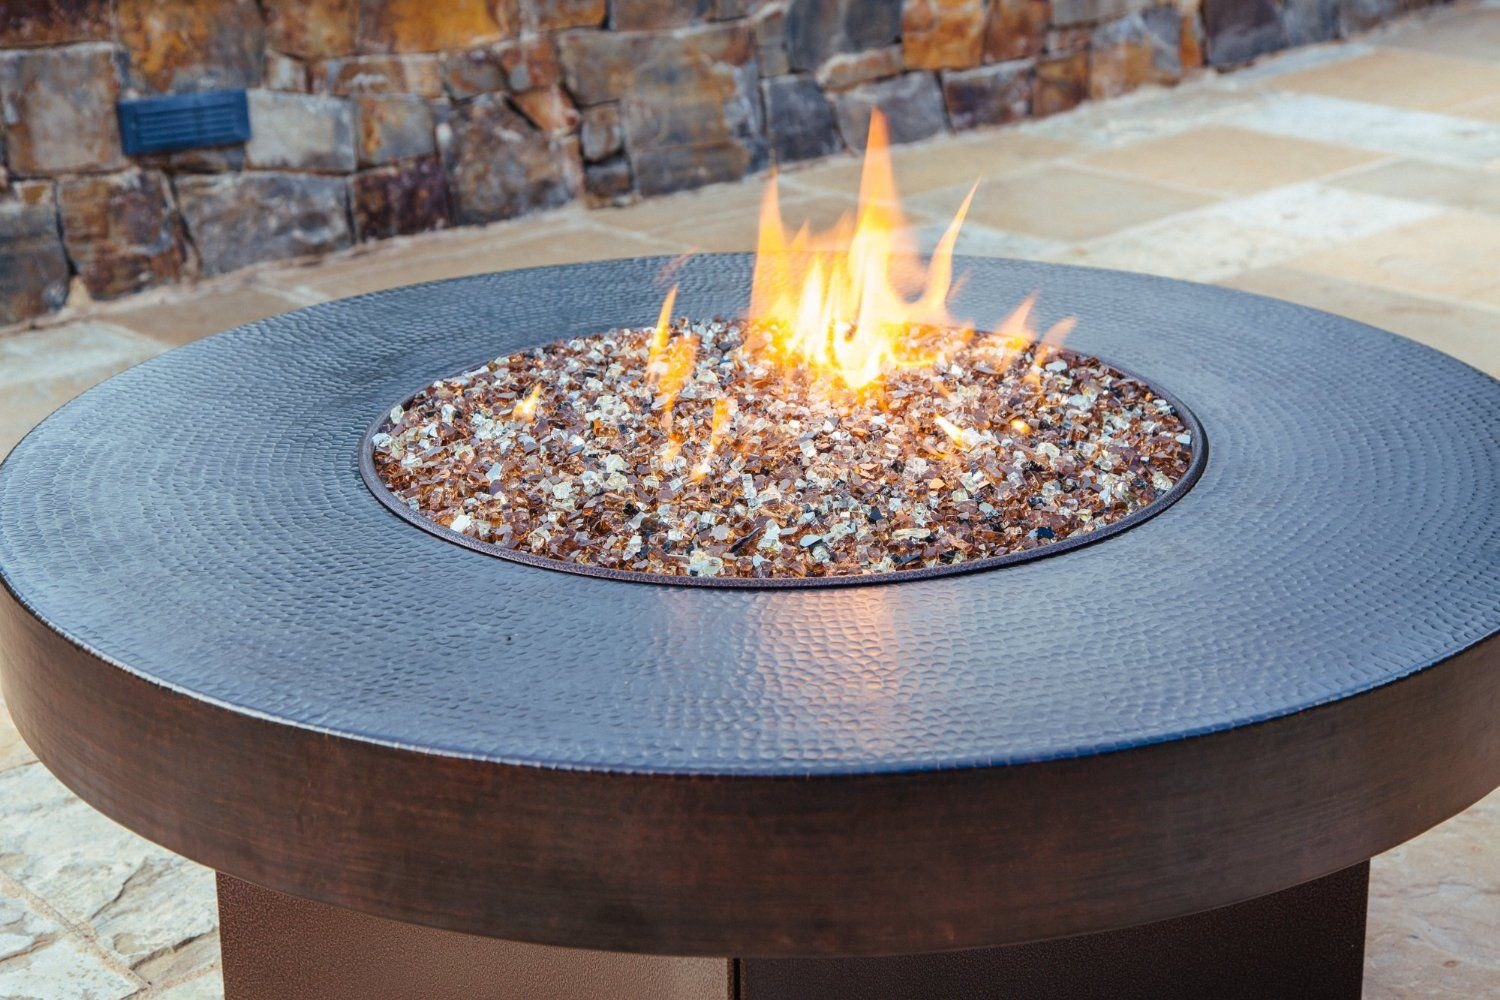 Hammered Copper 42 Round Oriflamme Fire Table Gas Fire Pit Table Made Of Real 18 Gauge Hammered Copper Sealed T Gas Firepit Fire Pit Table Gas Fire Pit Table